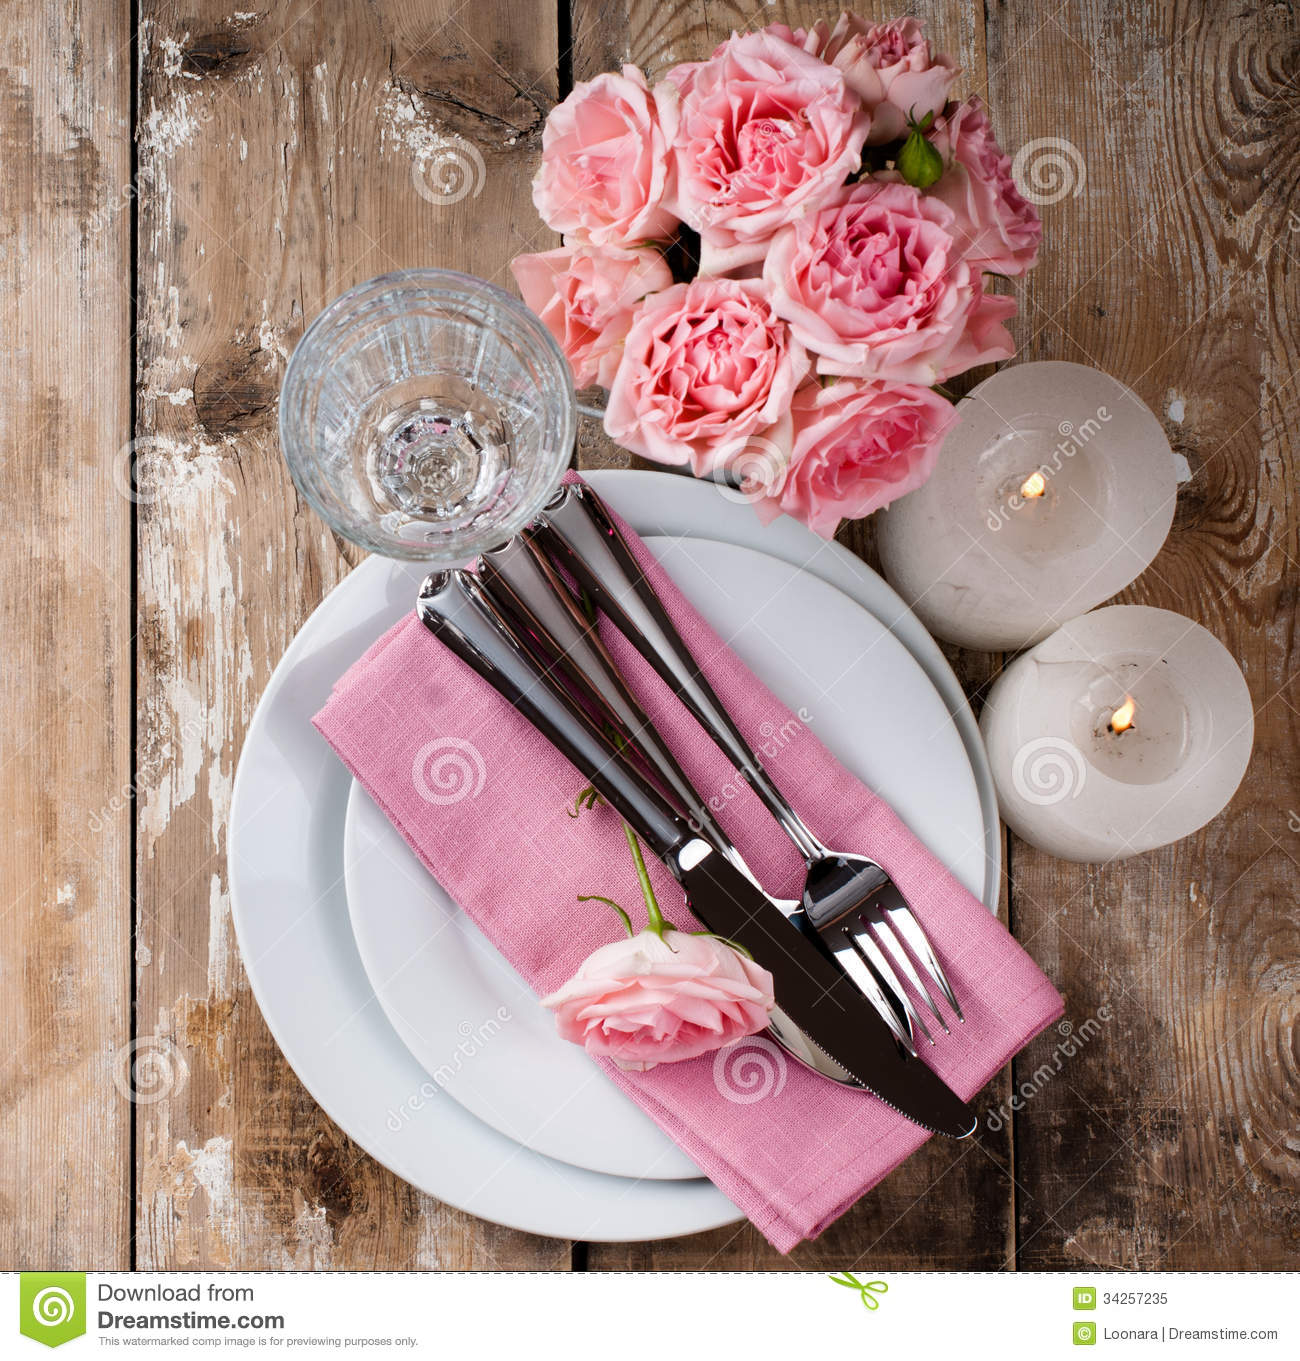 Vintage Festive Table Setting With Pink Roses Stock Image - Image of ...